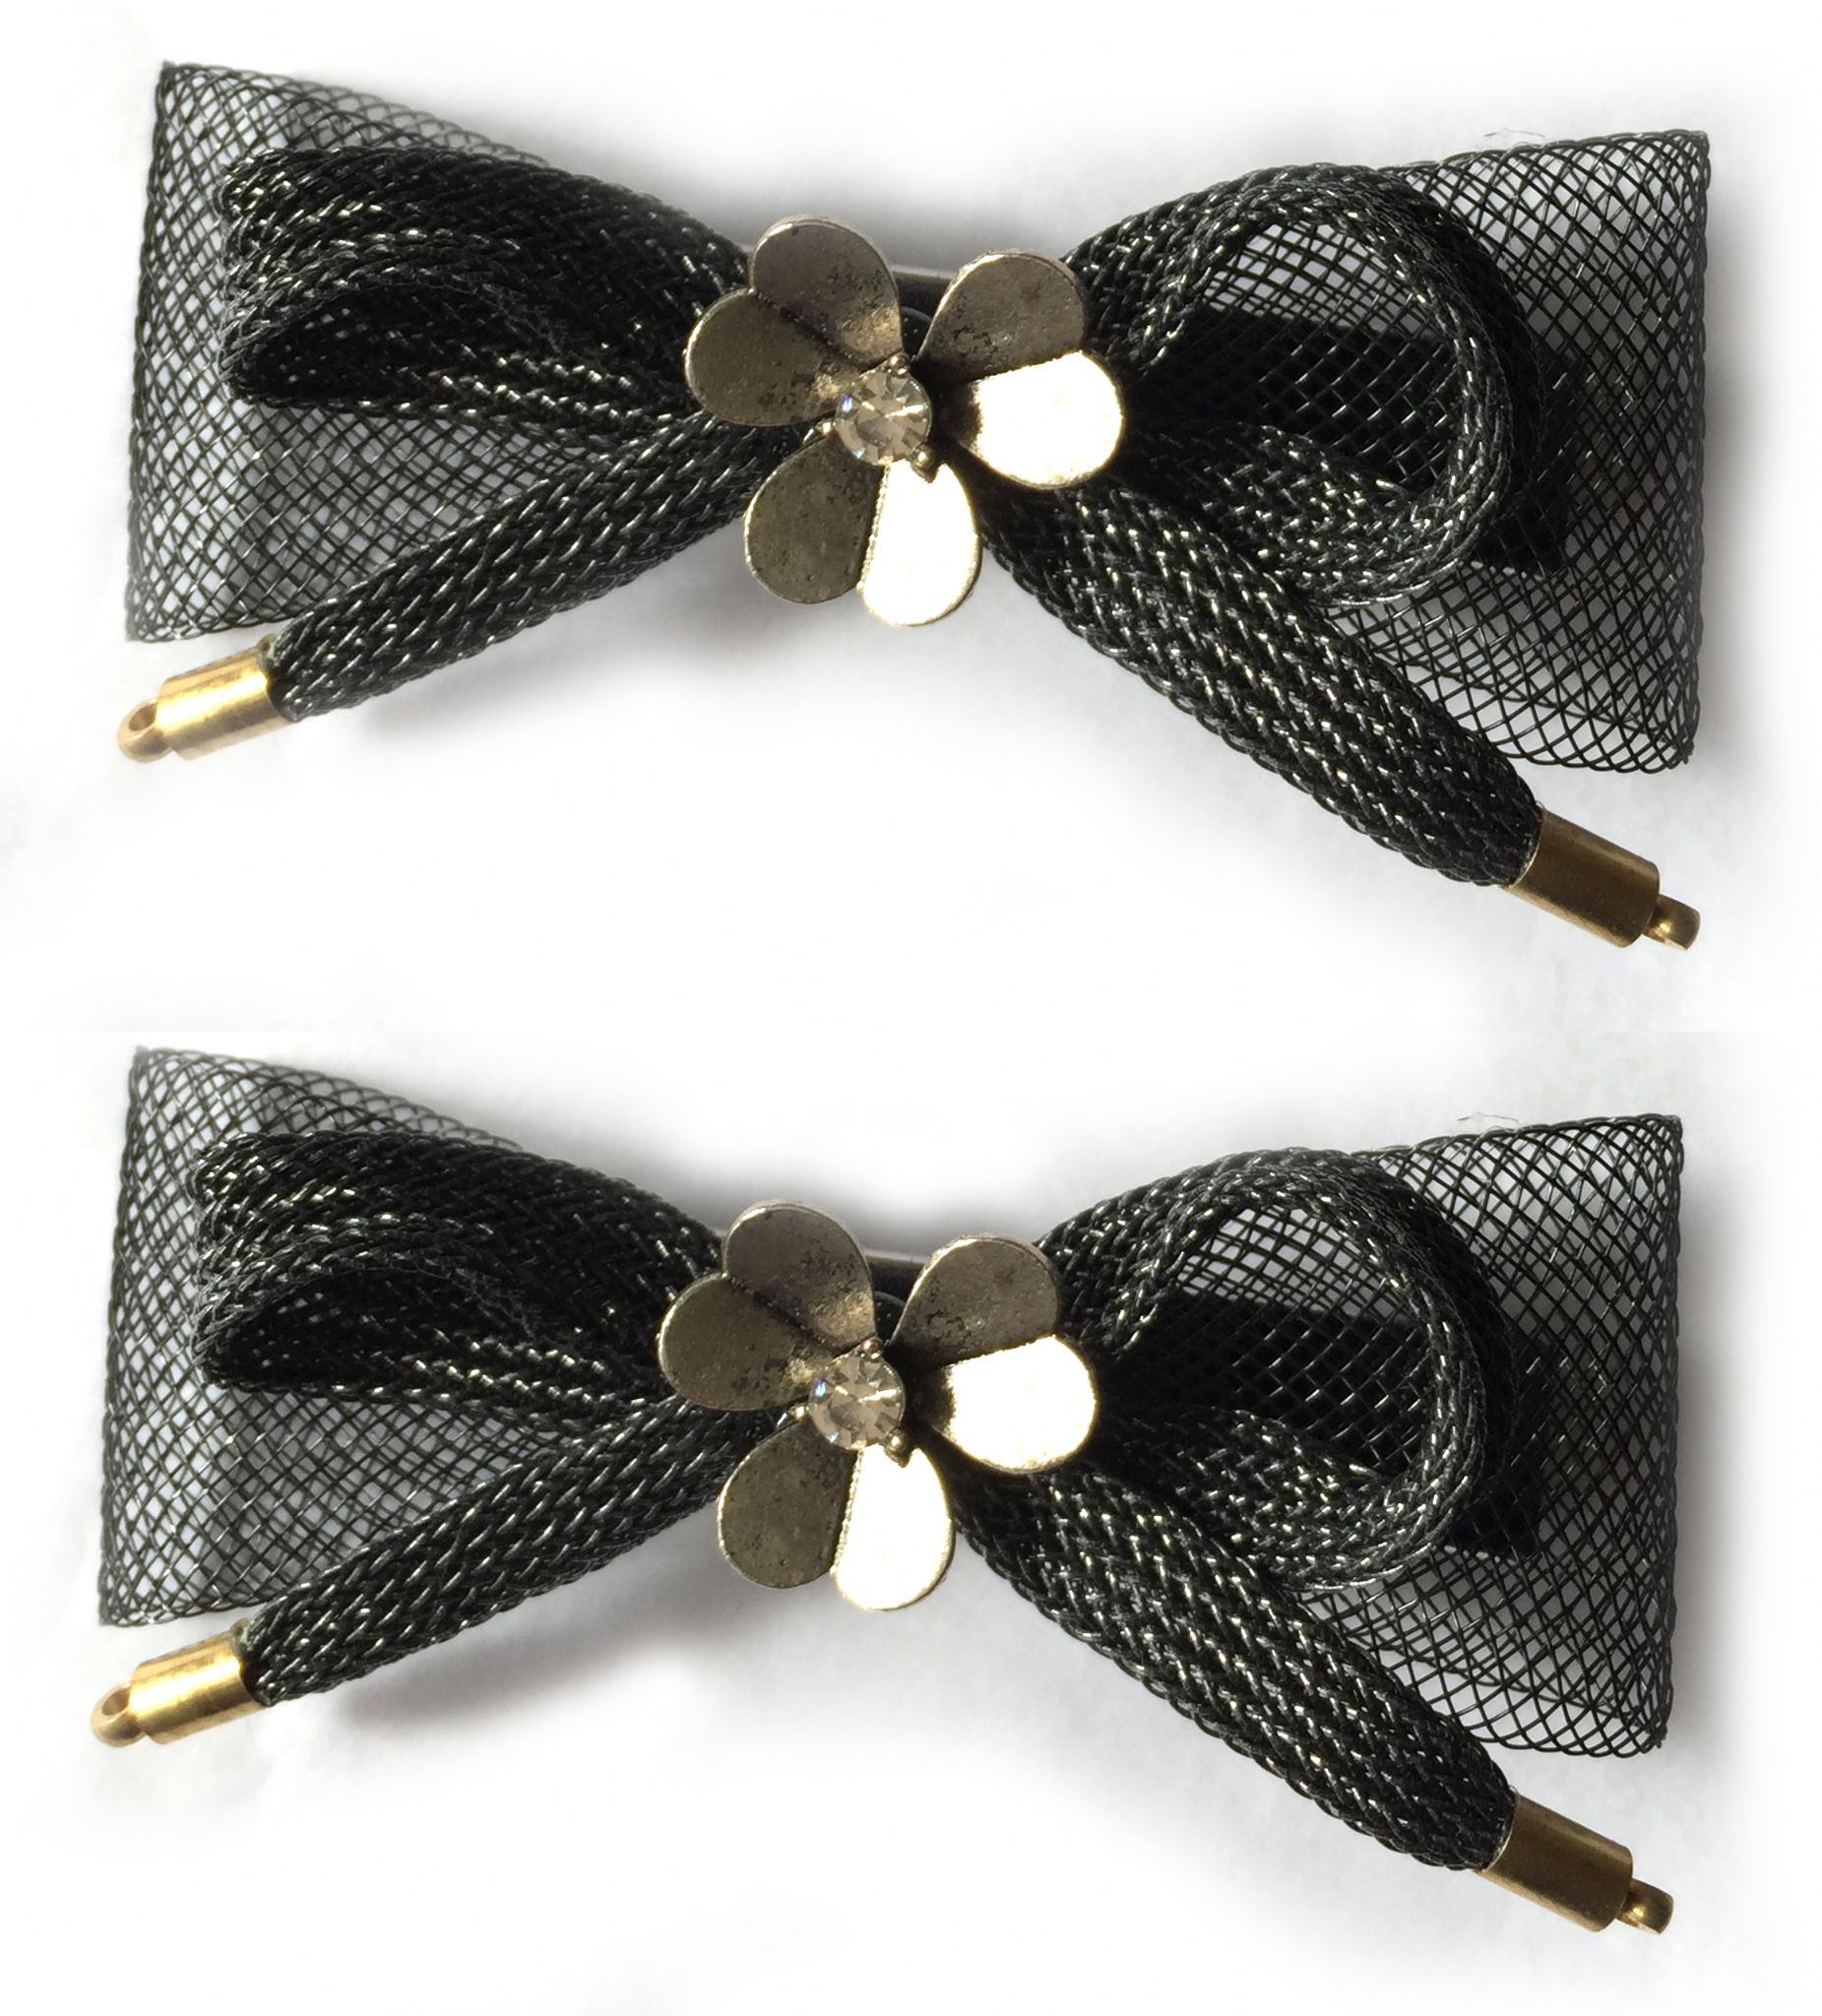 http://www.conmigolondon.co.uk/ekmps/shops/conmigo/images/1.-al0065-eye-catching-dark-grey-bow-with-silver-metal-flower-hair-slids-2-pieces-15533-p.jpg